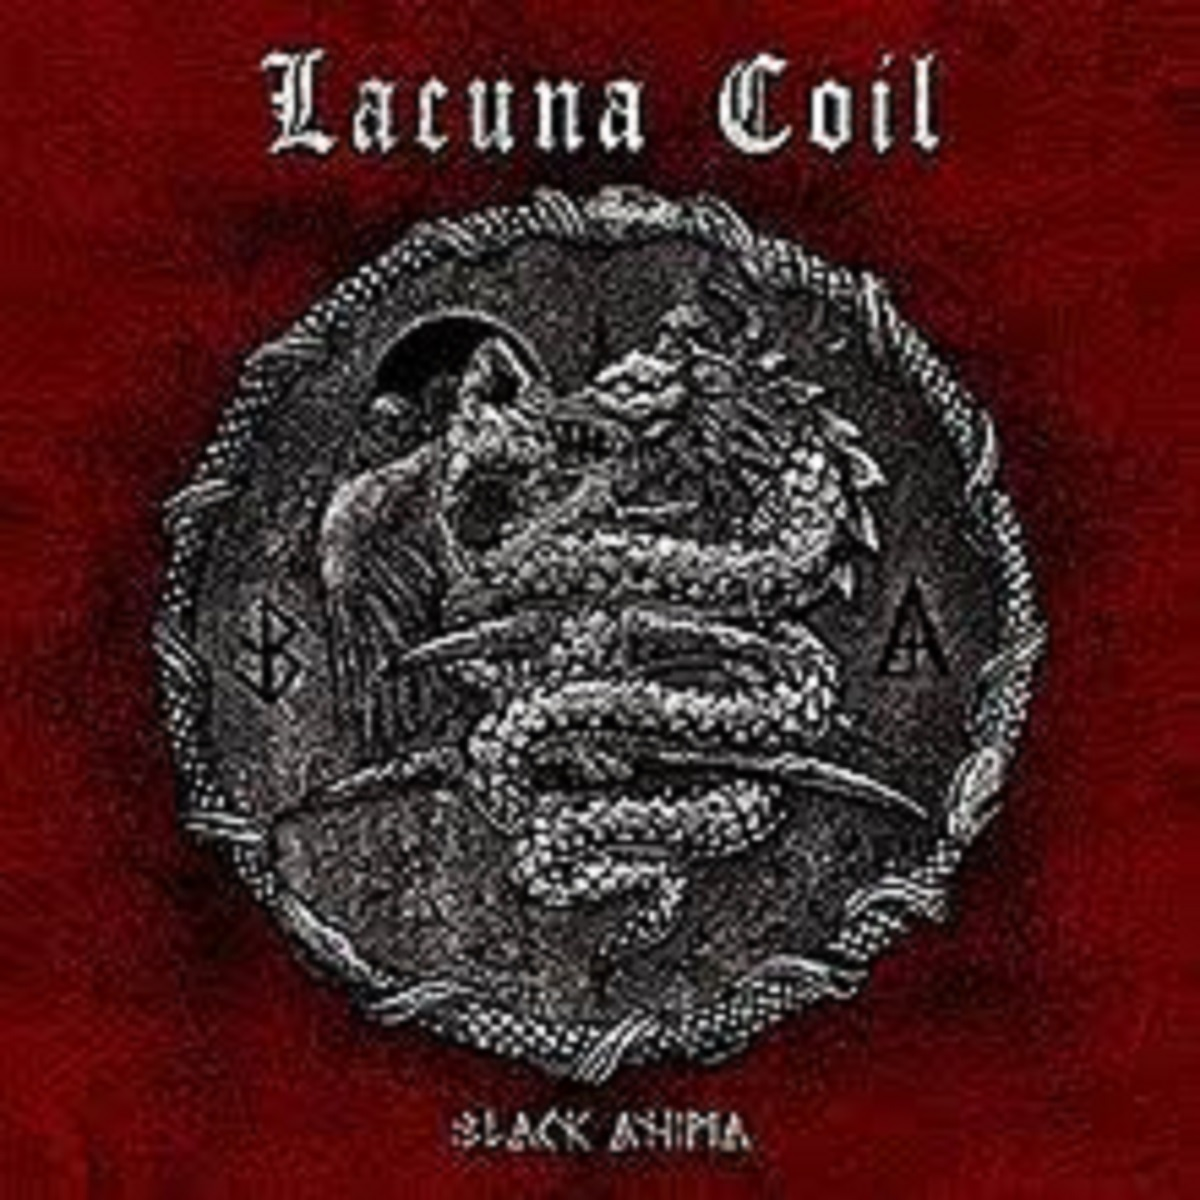 Review: Lacuna Coil – Black Anima